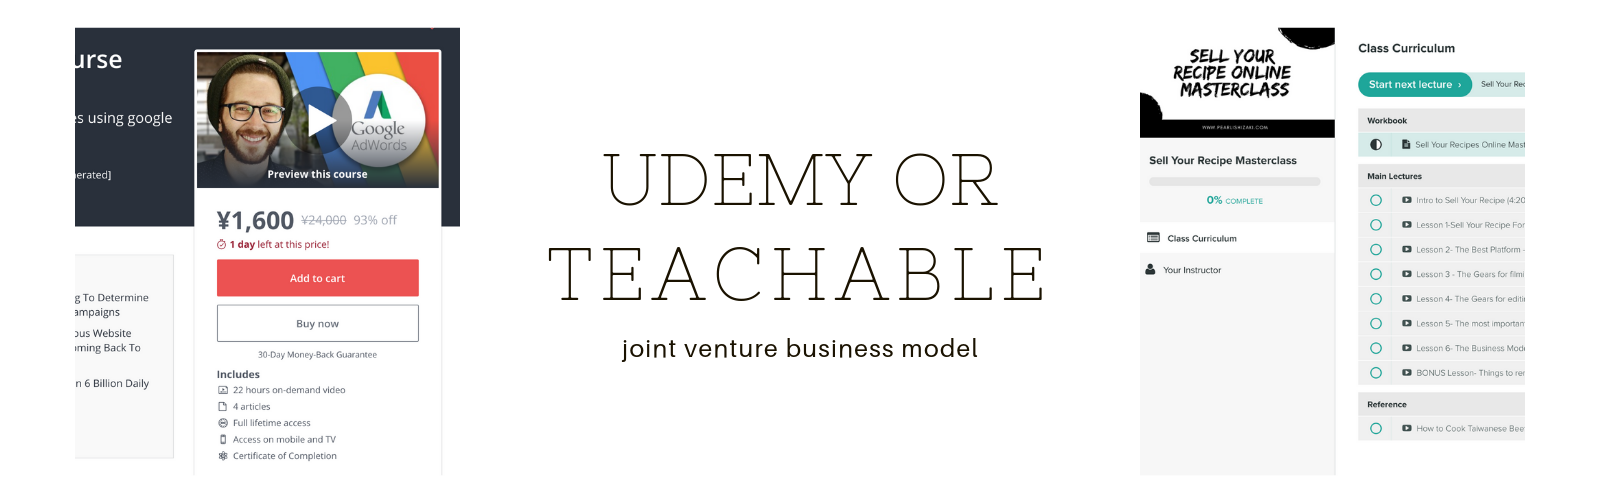 Teachable or udemy